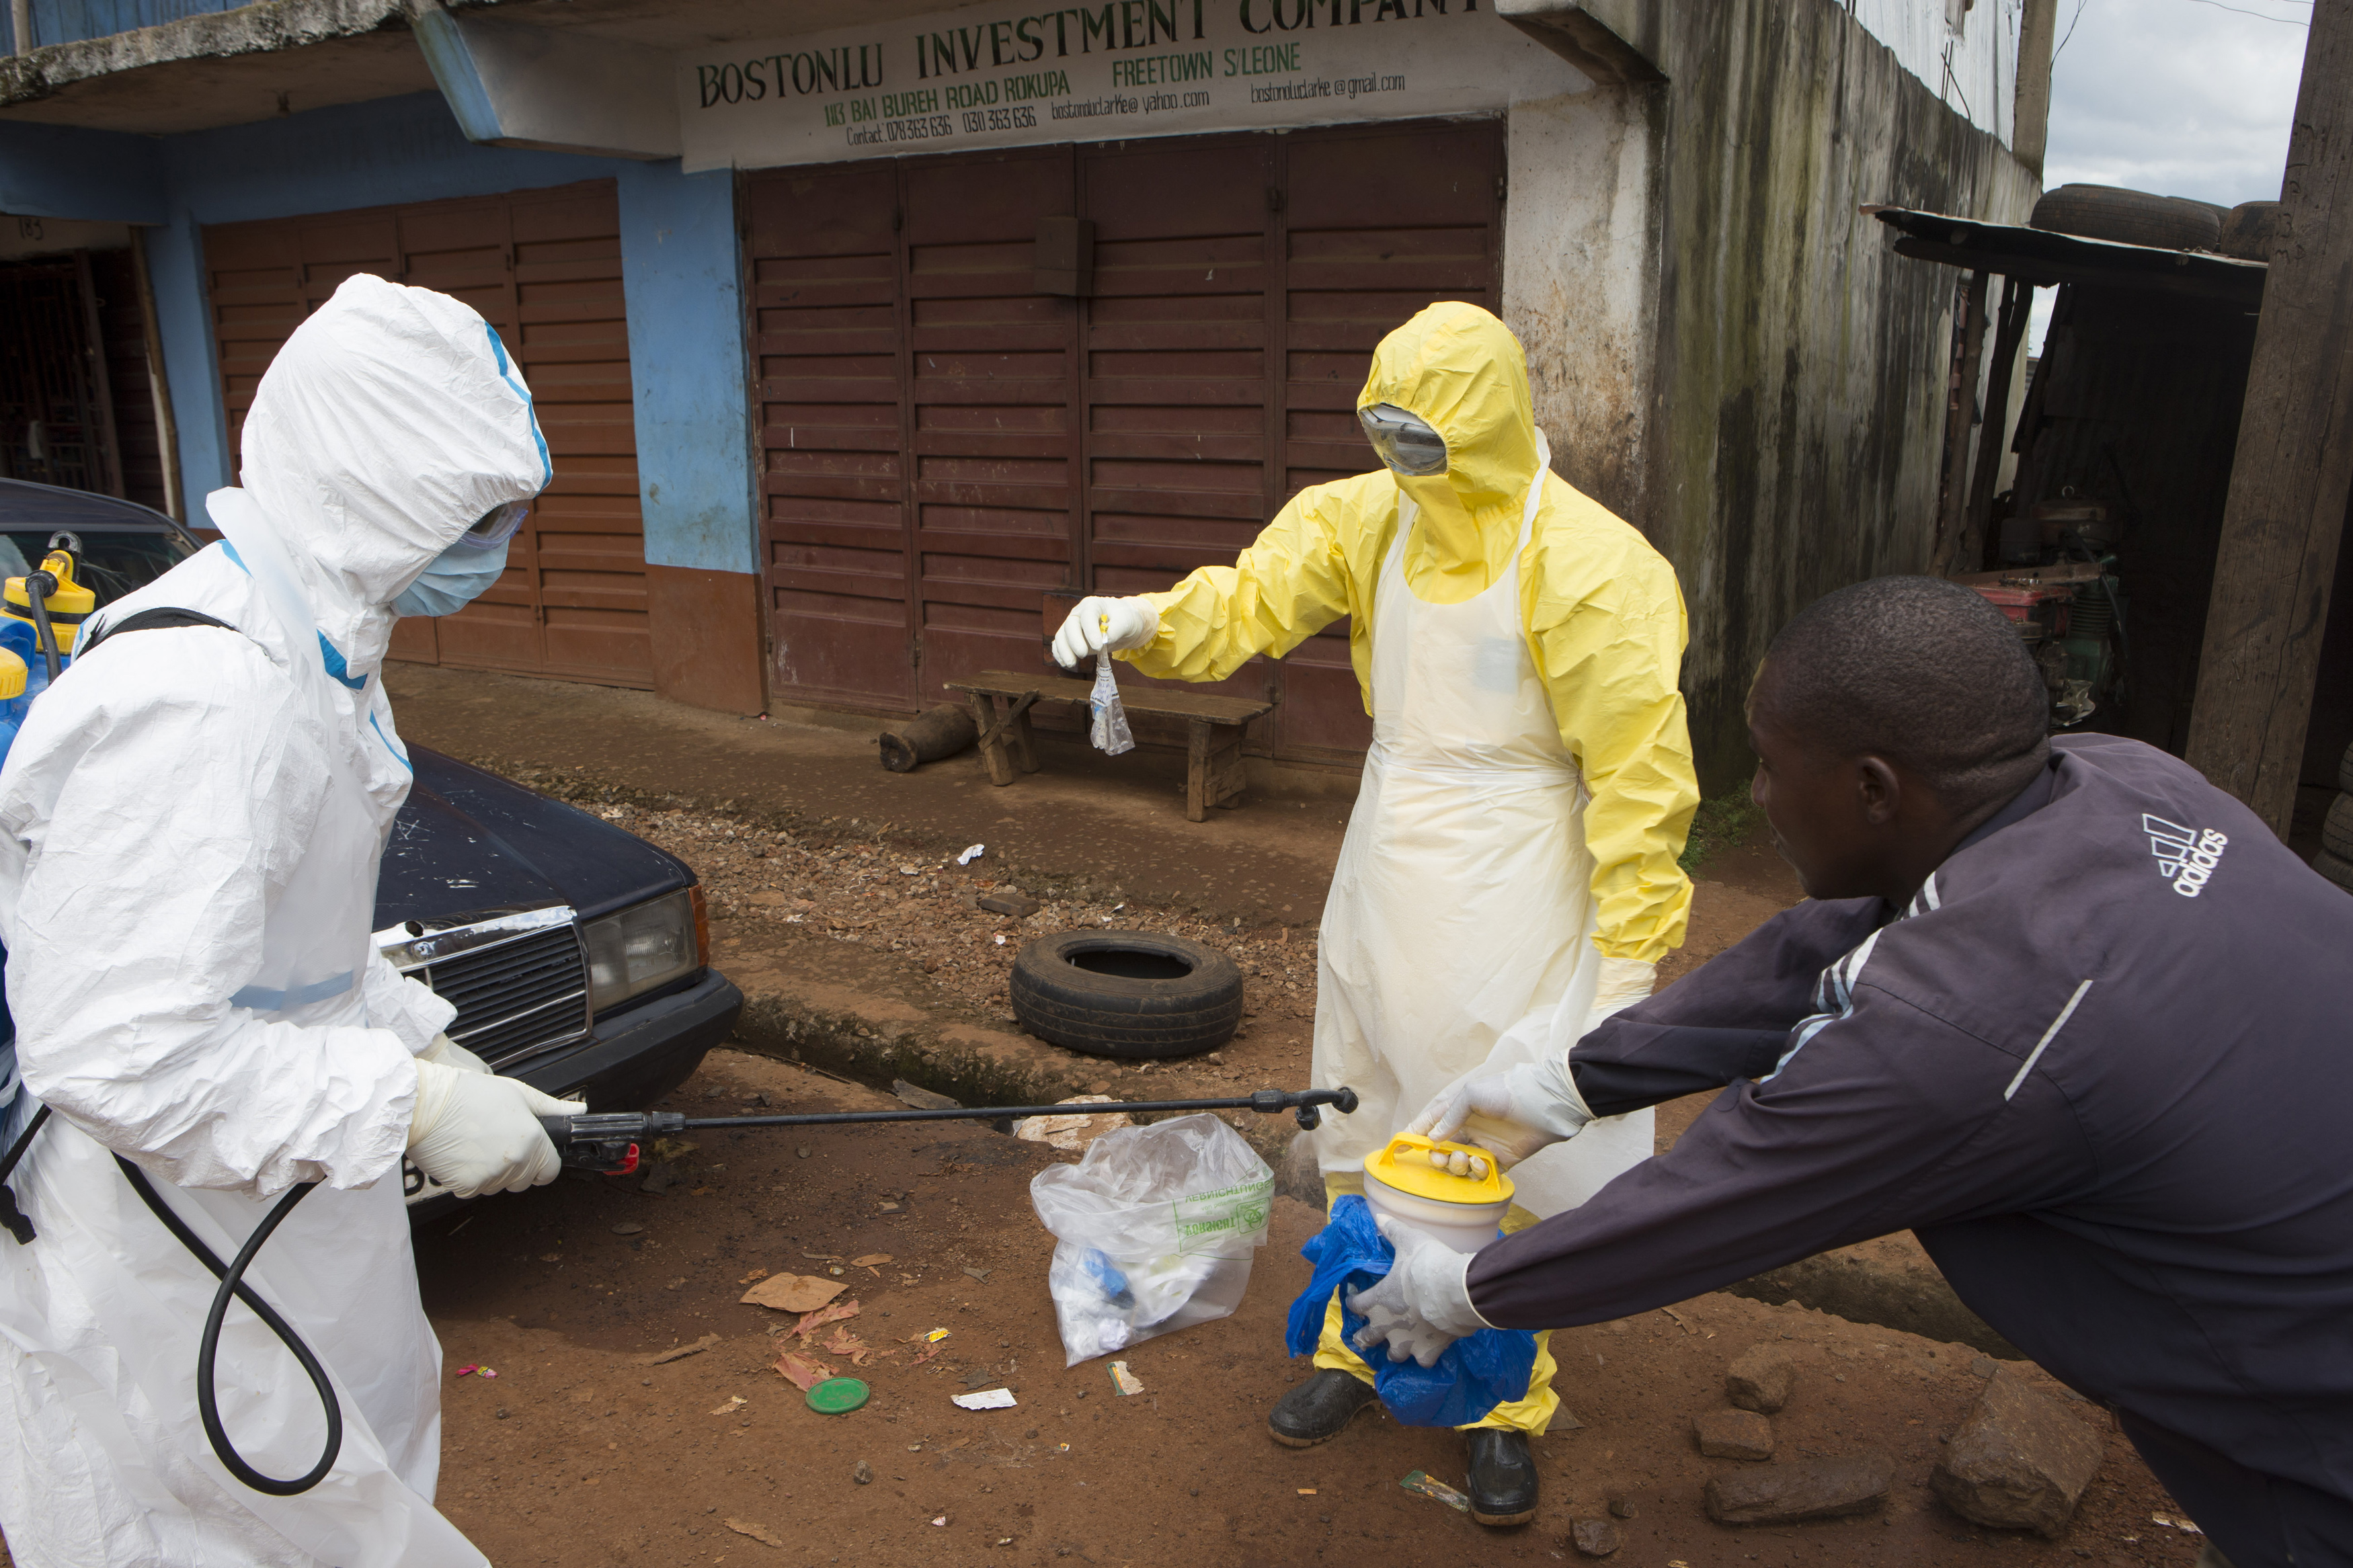 Health workers in protective equipment handle a sample taken from the body of someone who is suspected to have died from Ebola virus, near Rokupa Hospital